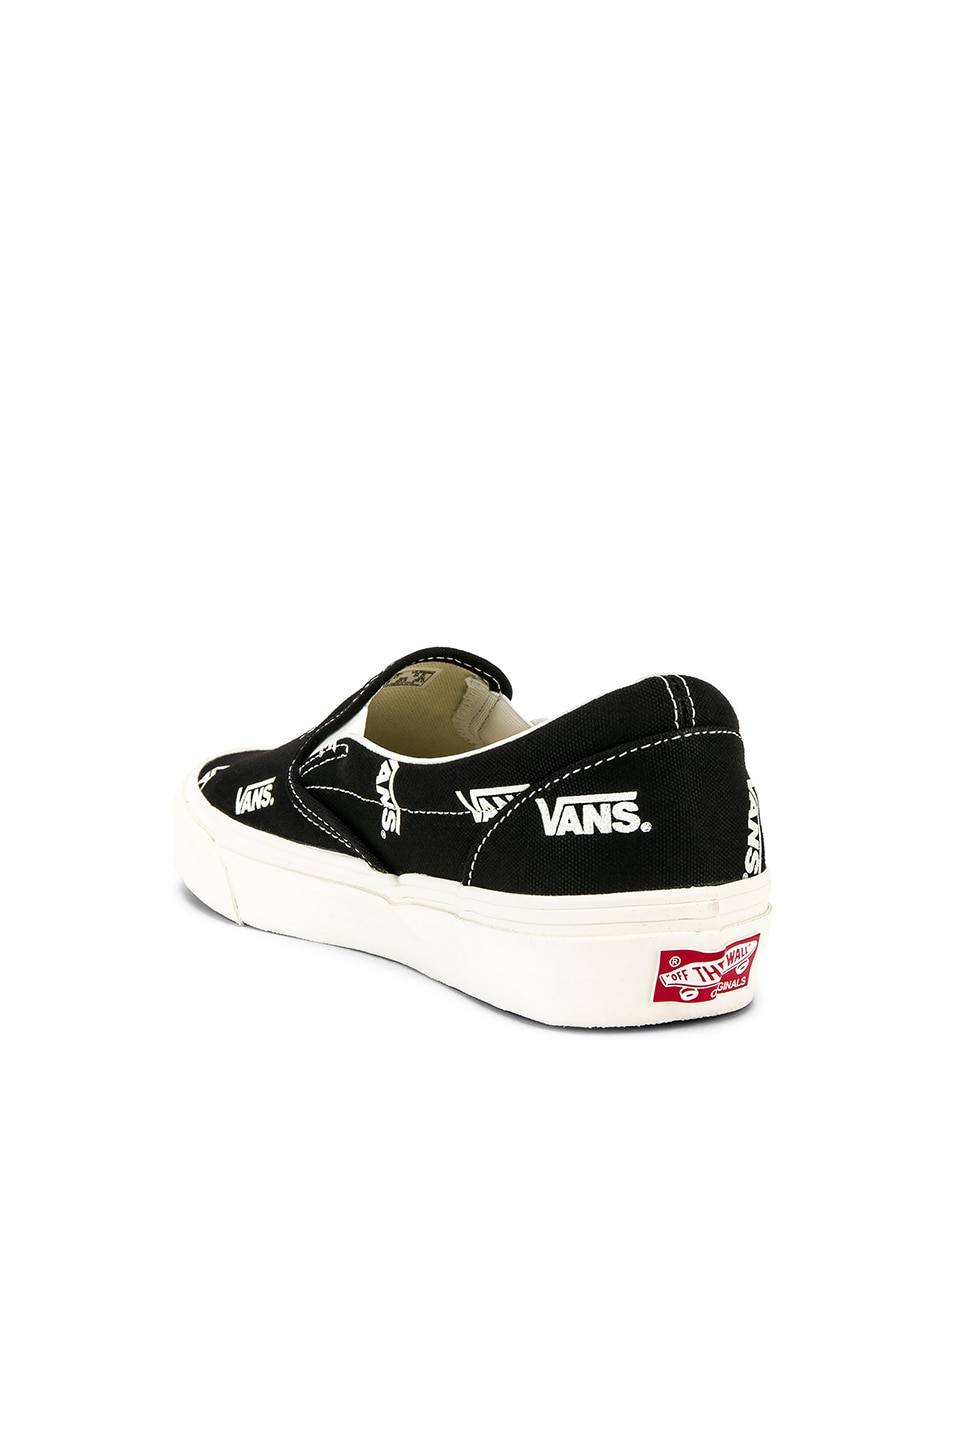 69aaa01157 Image 3 of Vans Vault OG Classic Slip-On LX in Black   Marshmallow